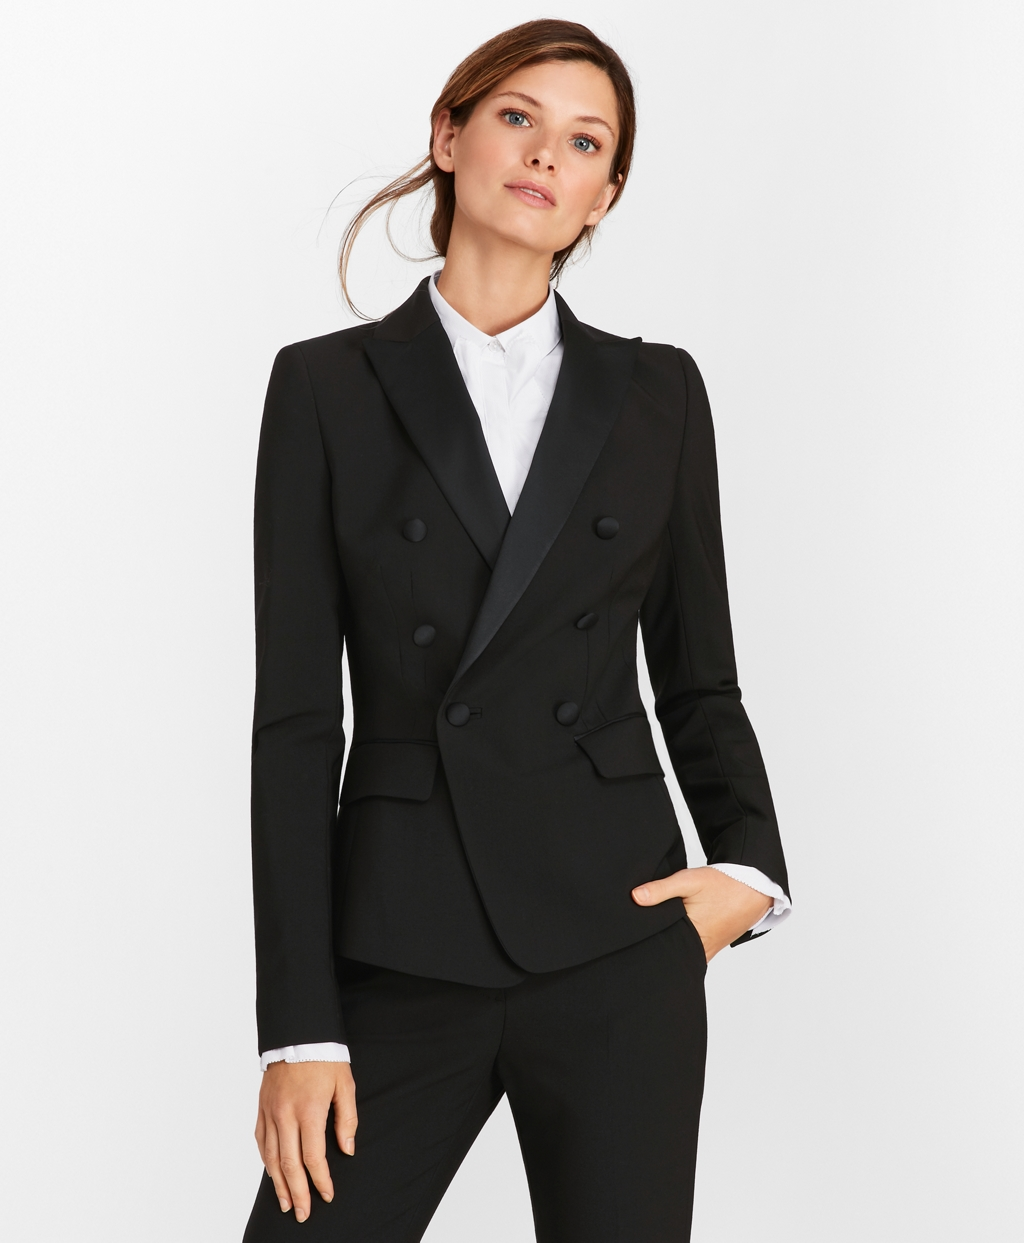 1930s Evening Dresses | Old Hollywood Silver Screen Dresses Brooks Brothers Womens Petite Stretch-Wool Crepe Double-Breasted Tuxedo Jacket $348.60 AT vintagedancer.com